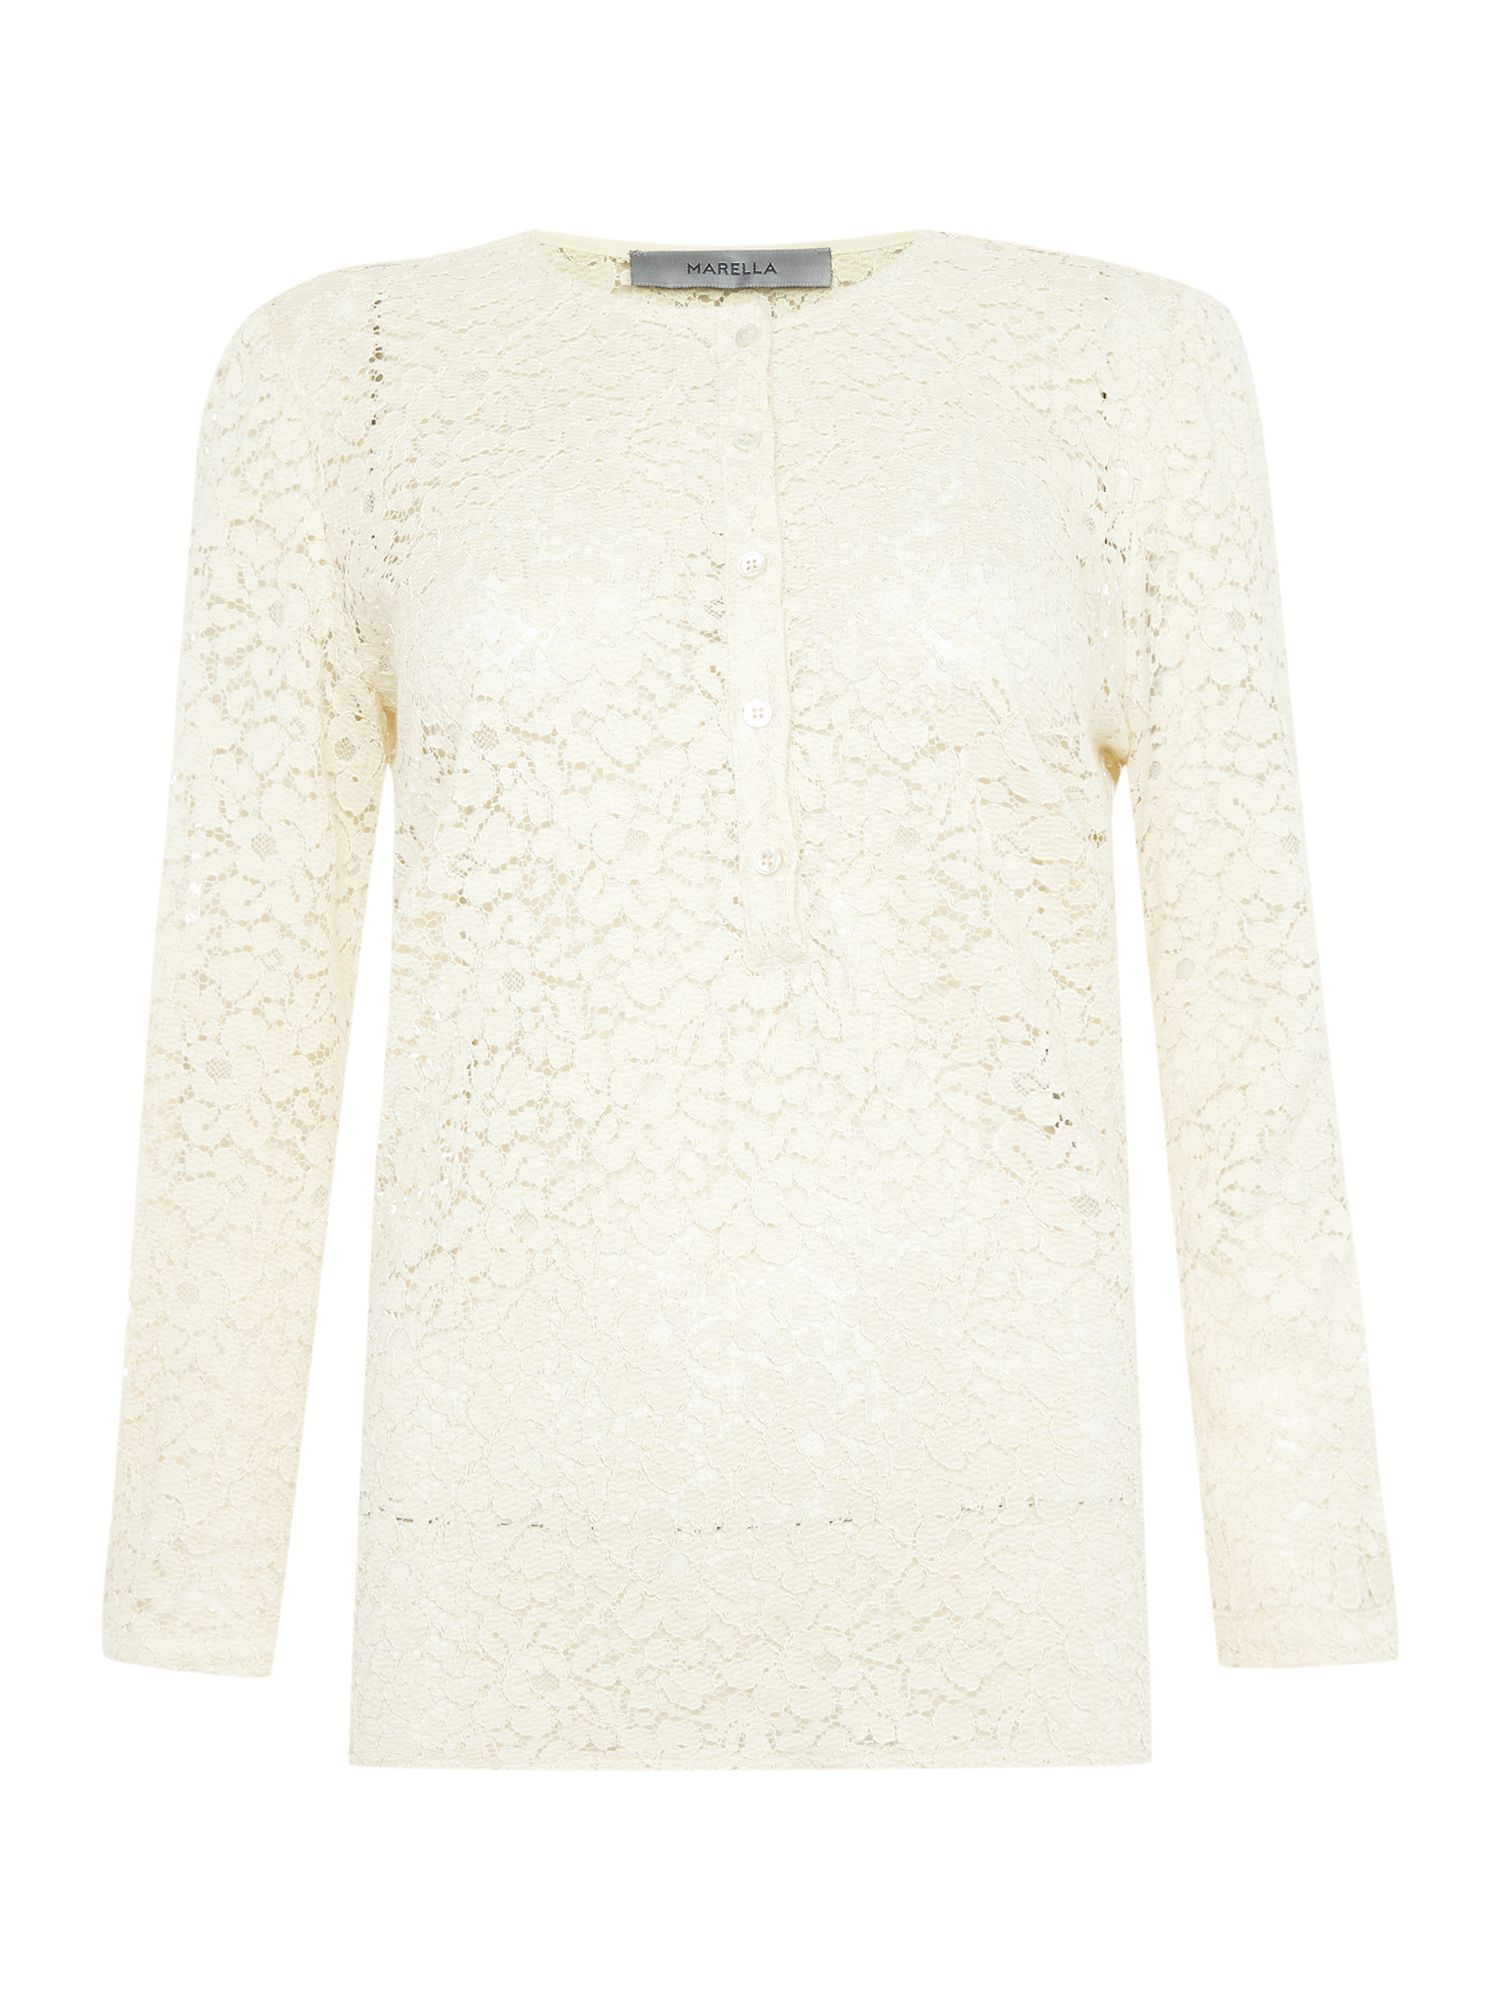 Marella Gettata long sleeve lace button up blouse, White